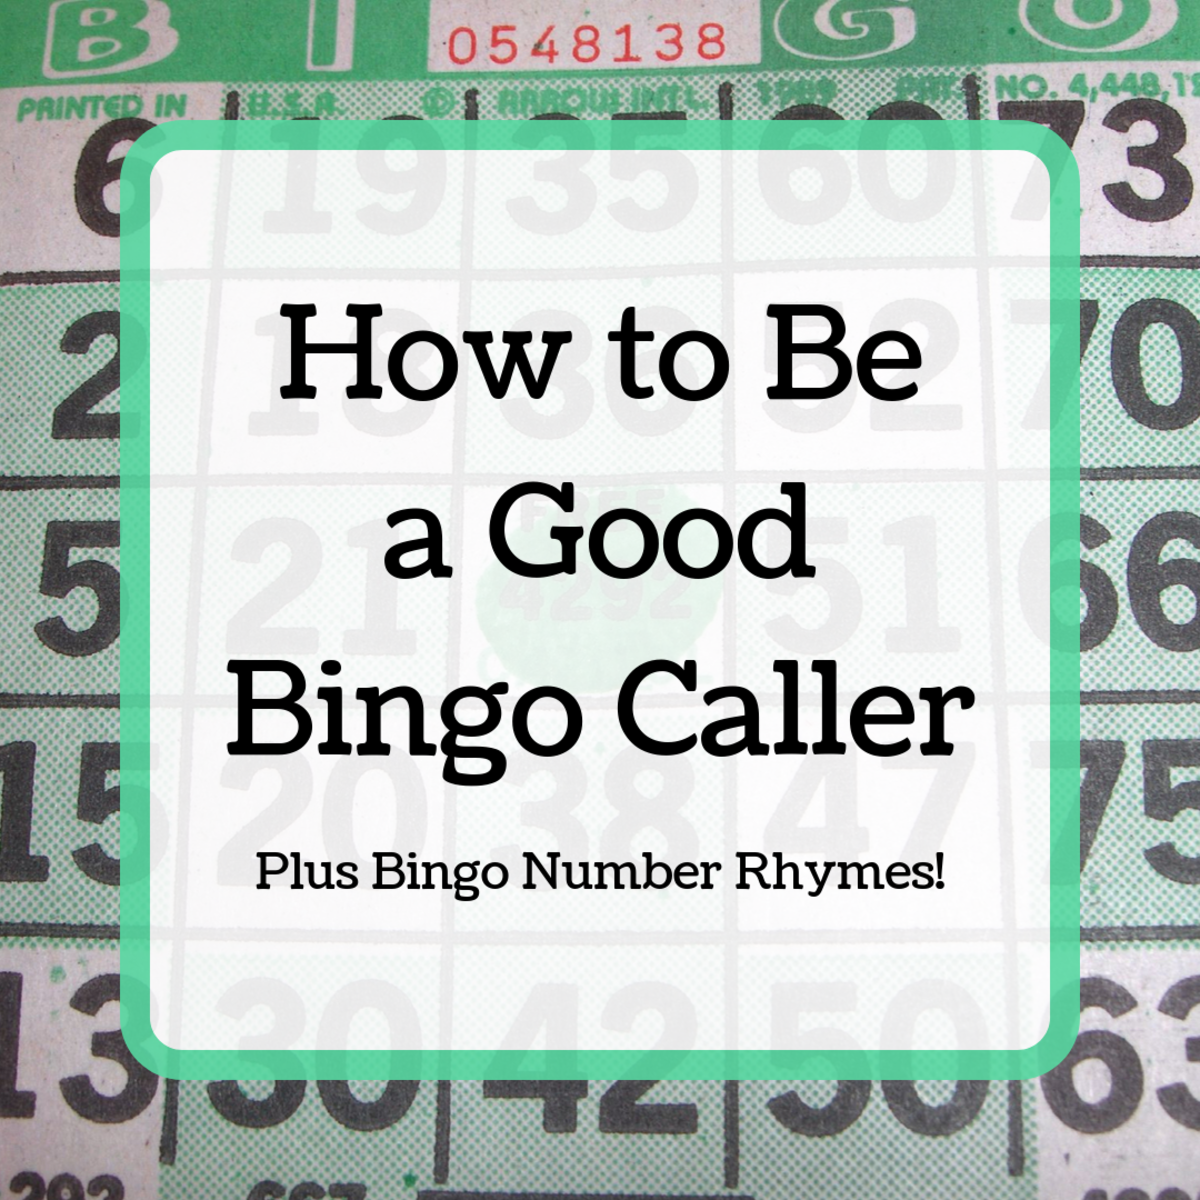 Tips for Calling Bingo (Including Bingo Number Rhymes)